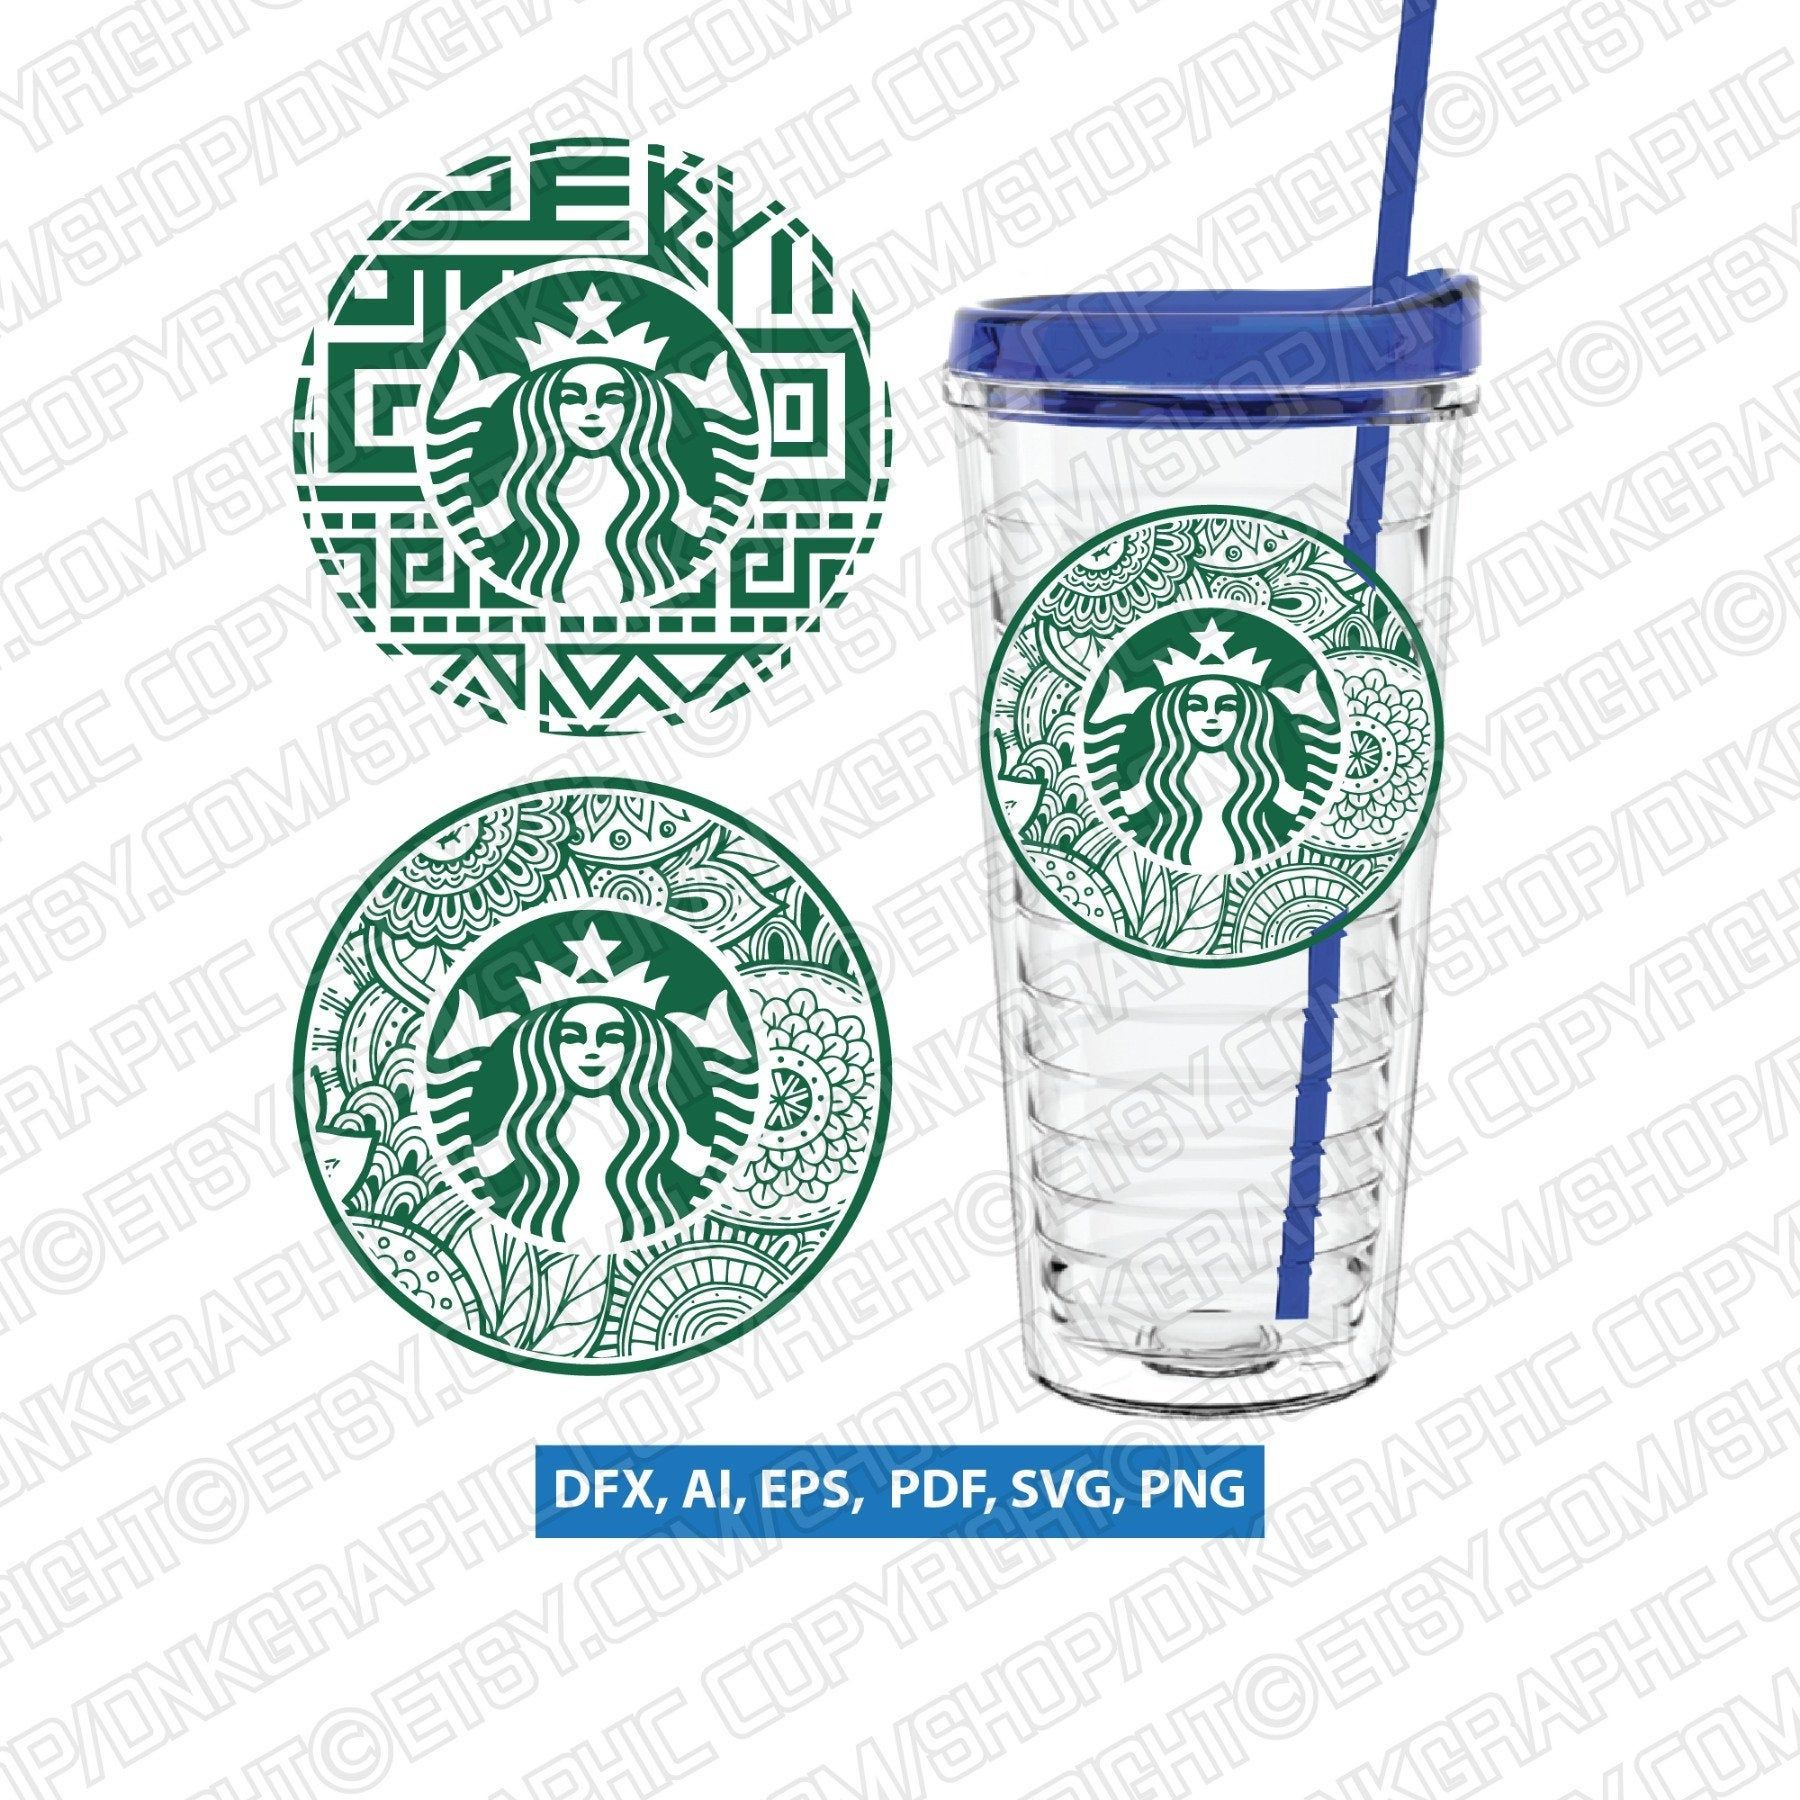 Aztec Abstract Floral Zentangle Mandala Starbucks Cup Starbucks Cup Svg Tumbler Mug Cold Cup Decal Silhouette Cameo Cricut In 2020 Abstract Floral Cup Decal Zentangle